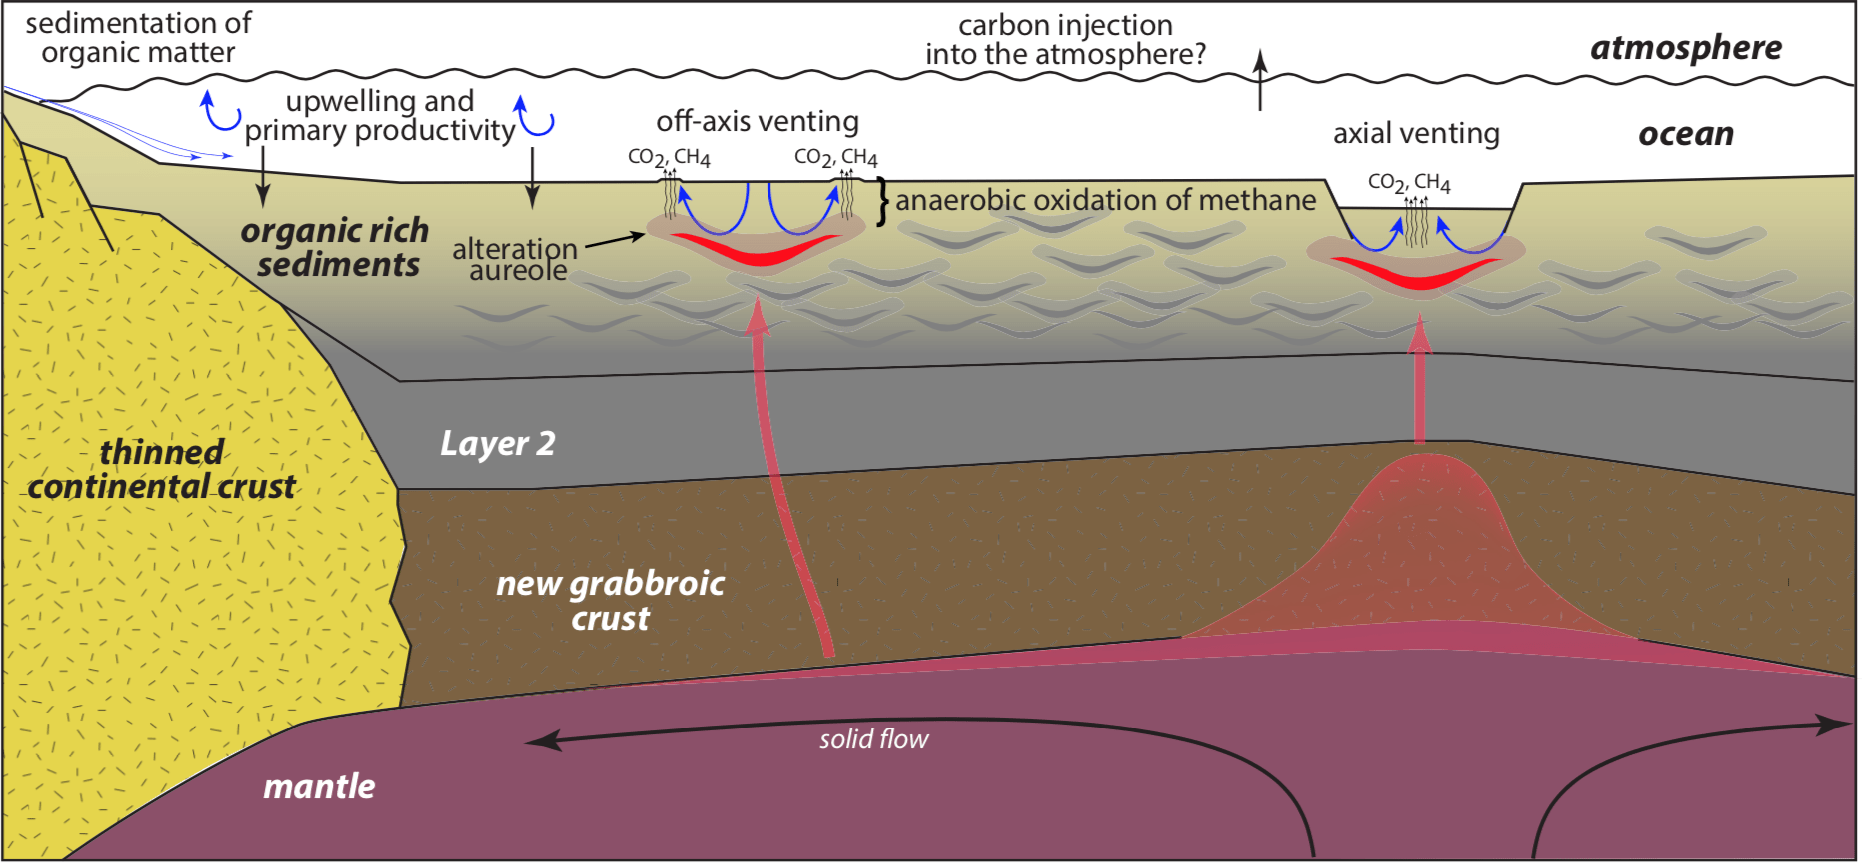 Integrated sedimentological, tectonic, magmatic, and microbial processes at work in Guaymas Basin and the associated carbon pathways. (From A. Teske et al. 2018)